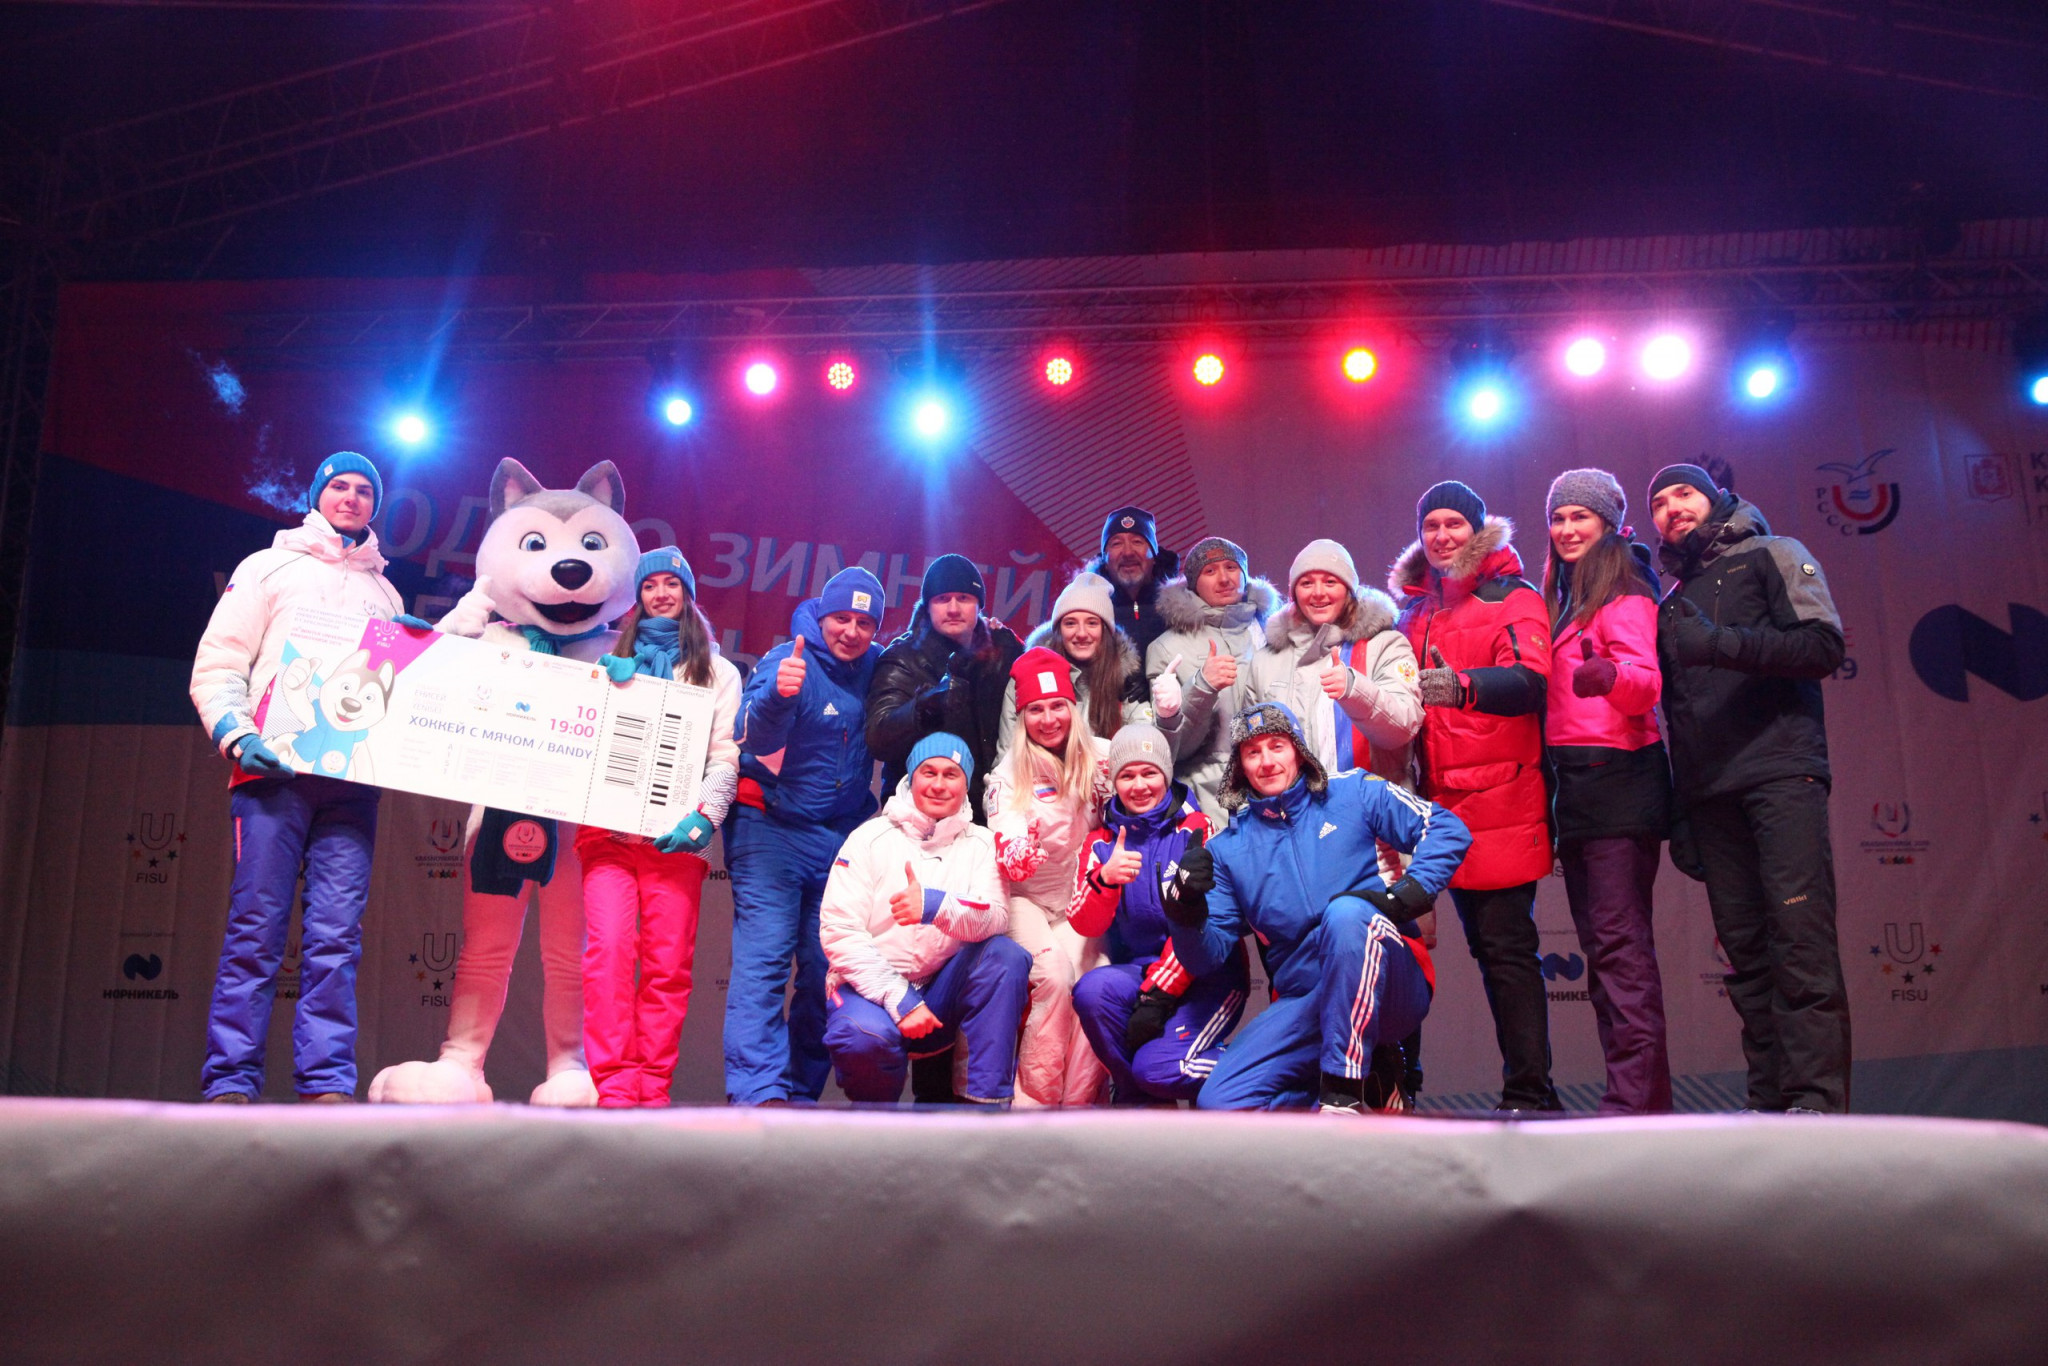 Tickets go on sale as Krasnoyarsk 2019 marks one year to go until start of Winter Universiade